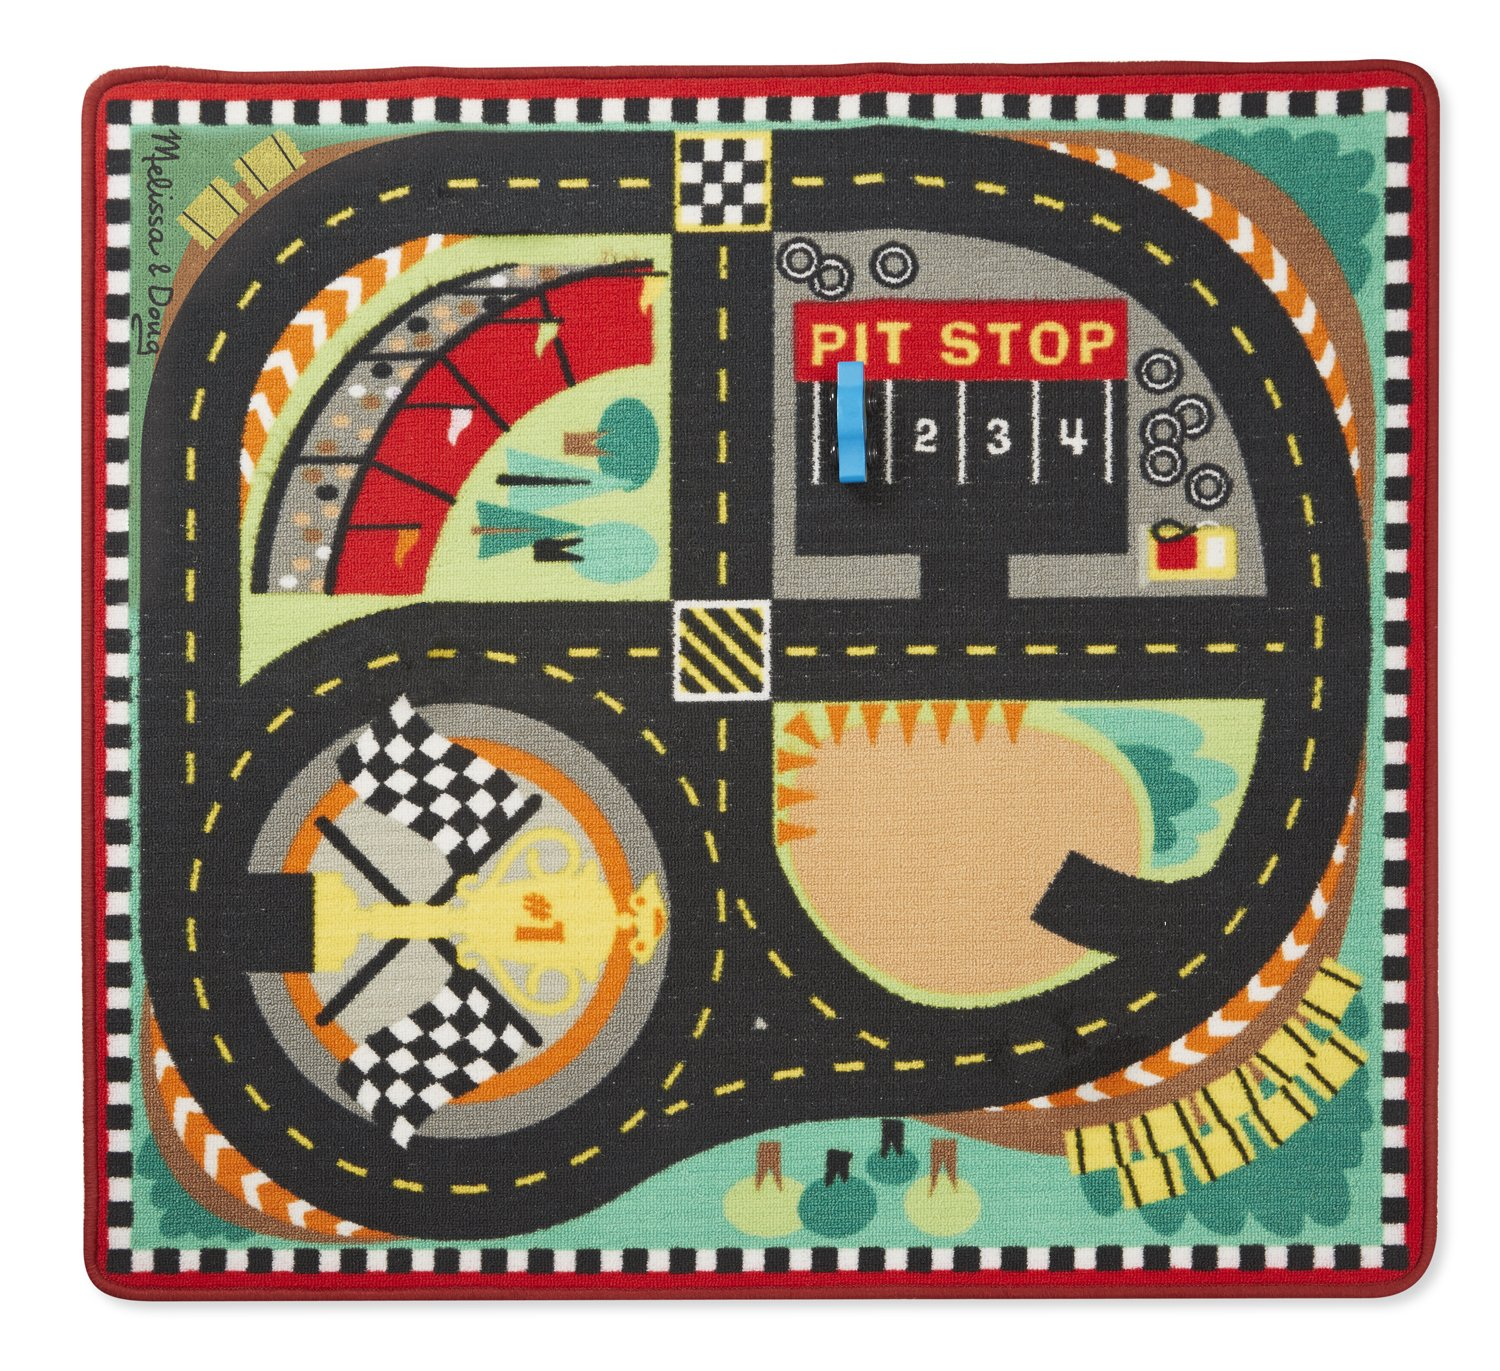 39 x 36 inches Melissa /& Doug Round The Speedway Race Track Rug with 4 Race Cars